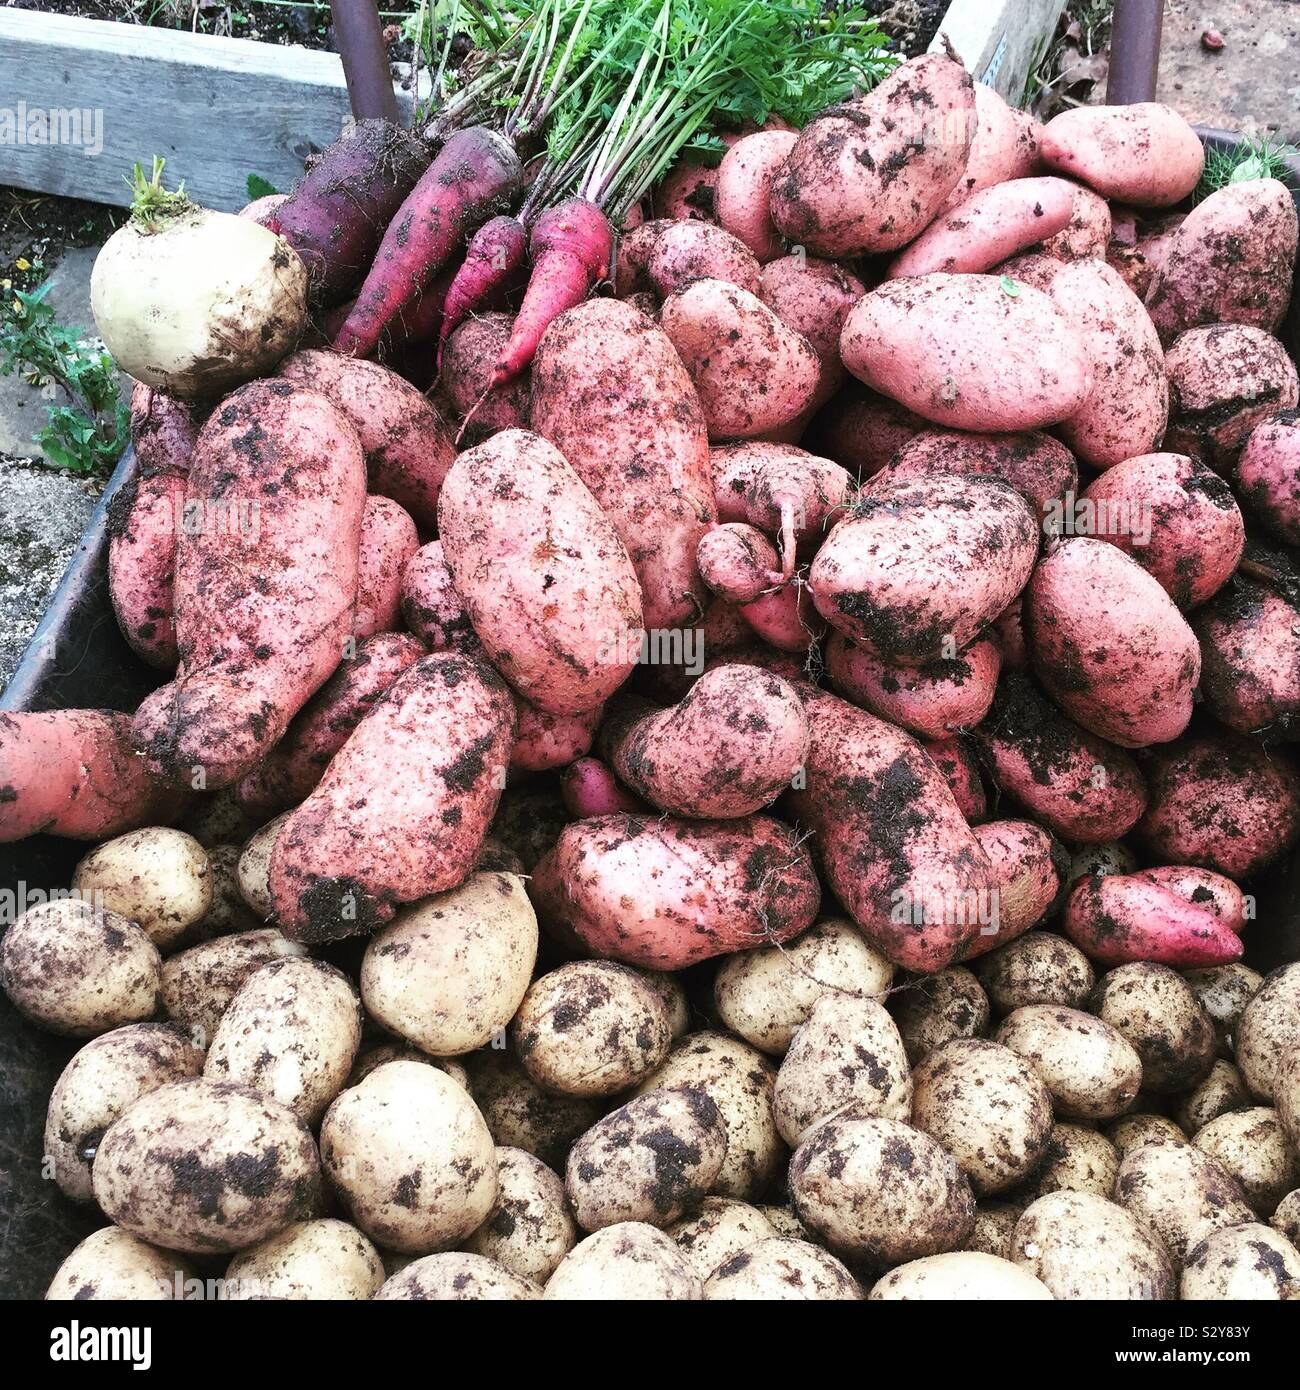 crop-of-freshly-dug-potatoes-and-carrots